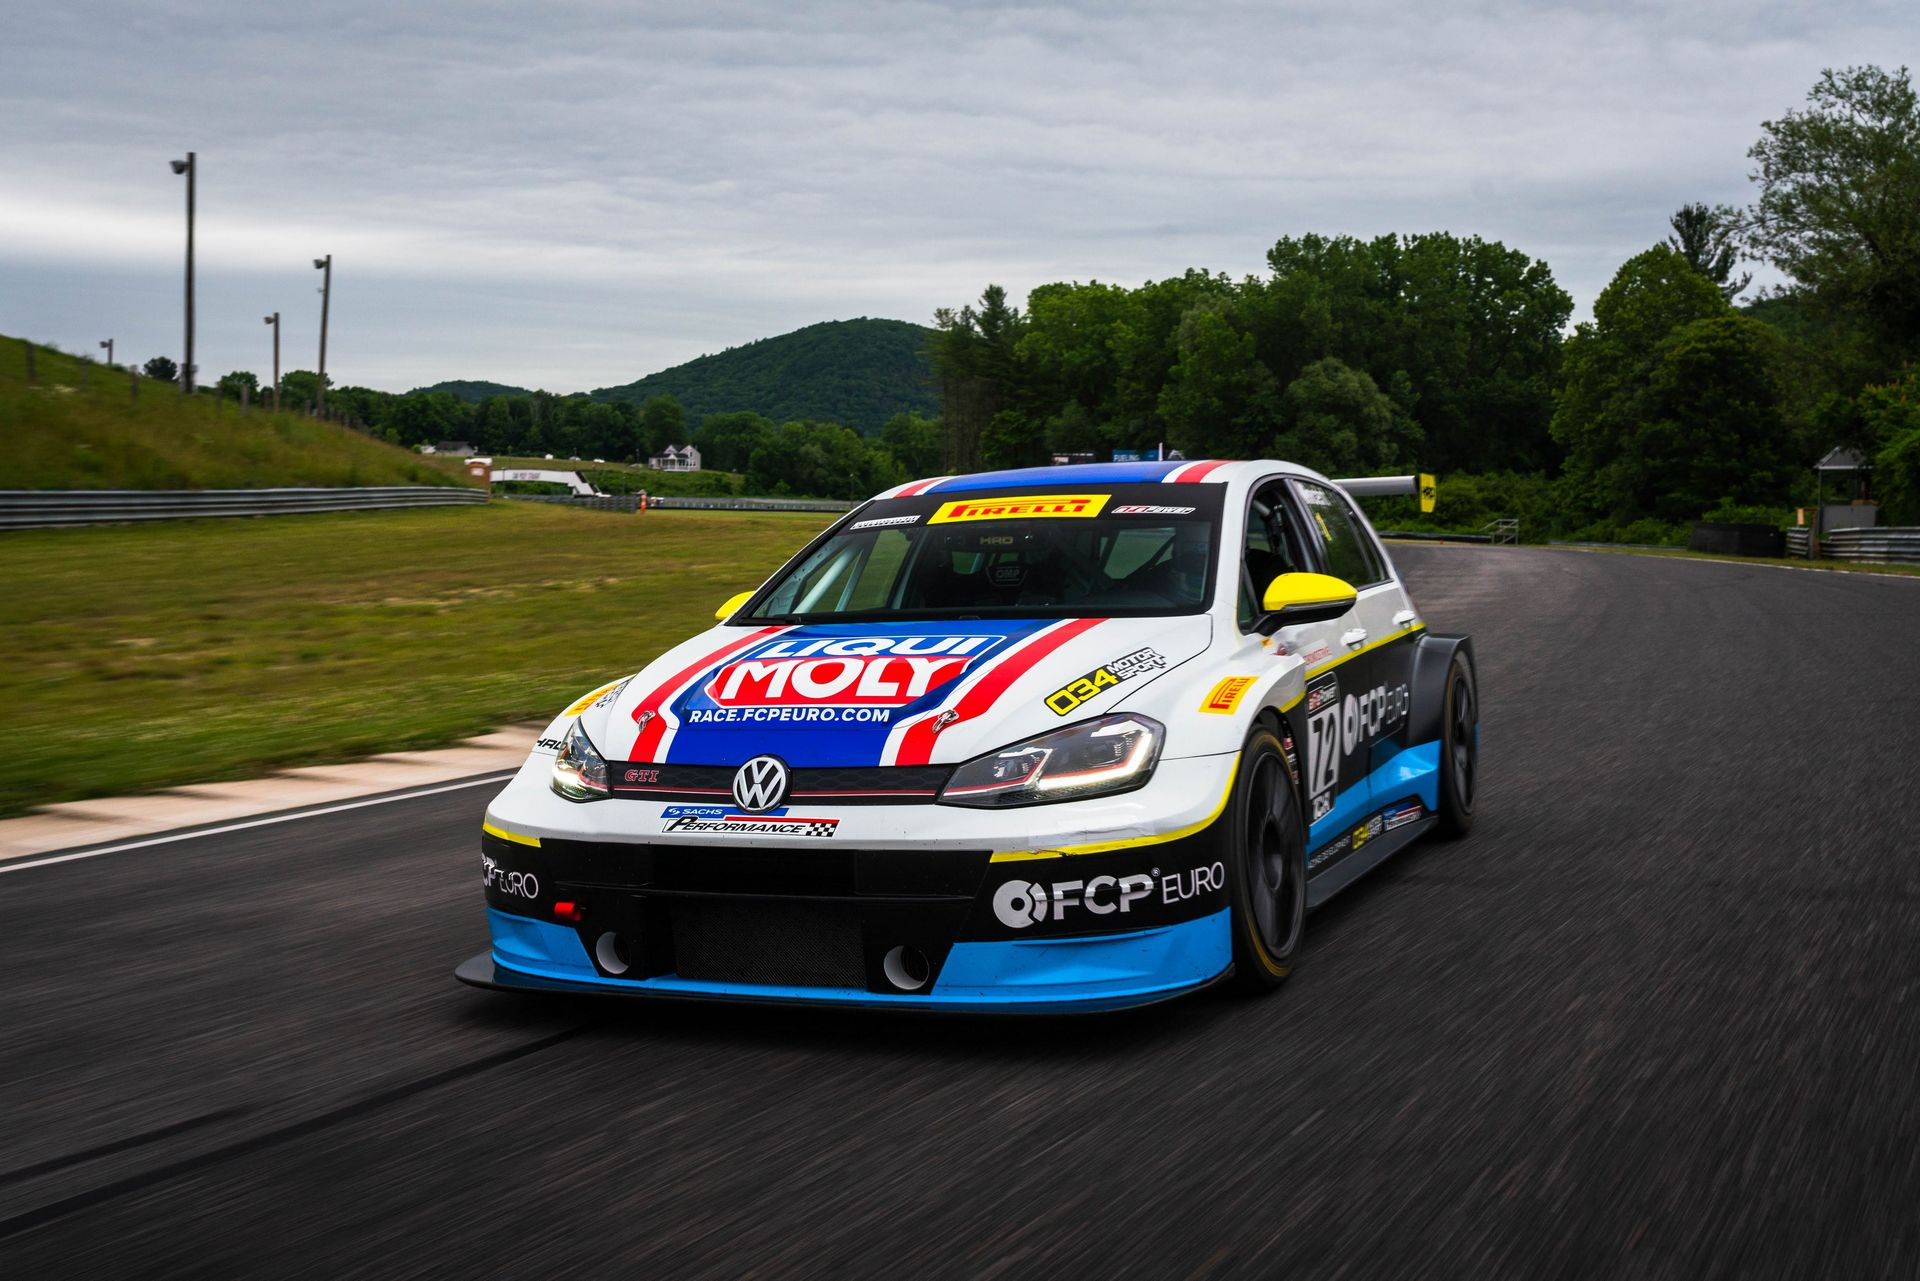 FCP Euro Lime Rock Park Sachs Performance 2018 Livery